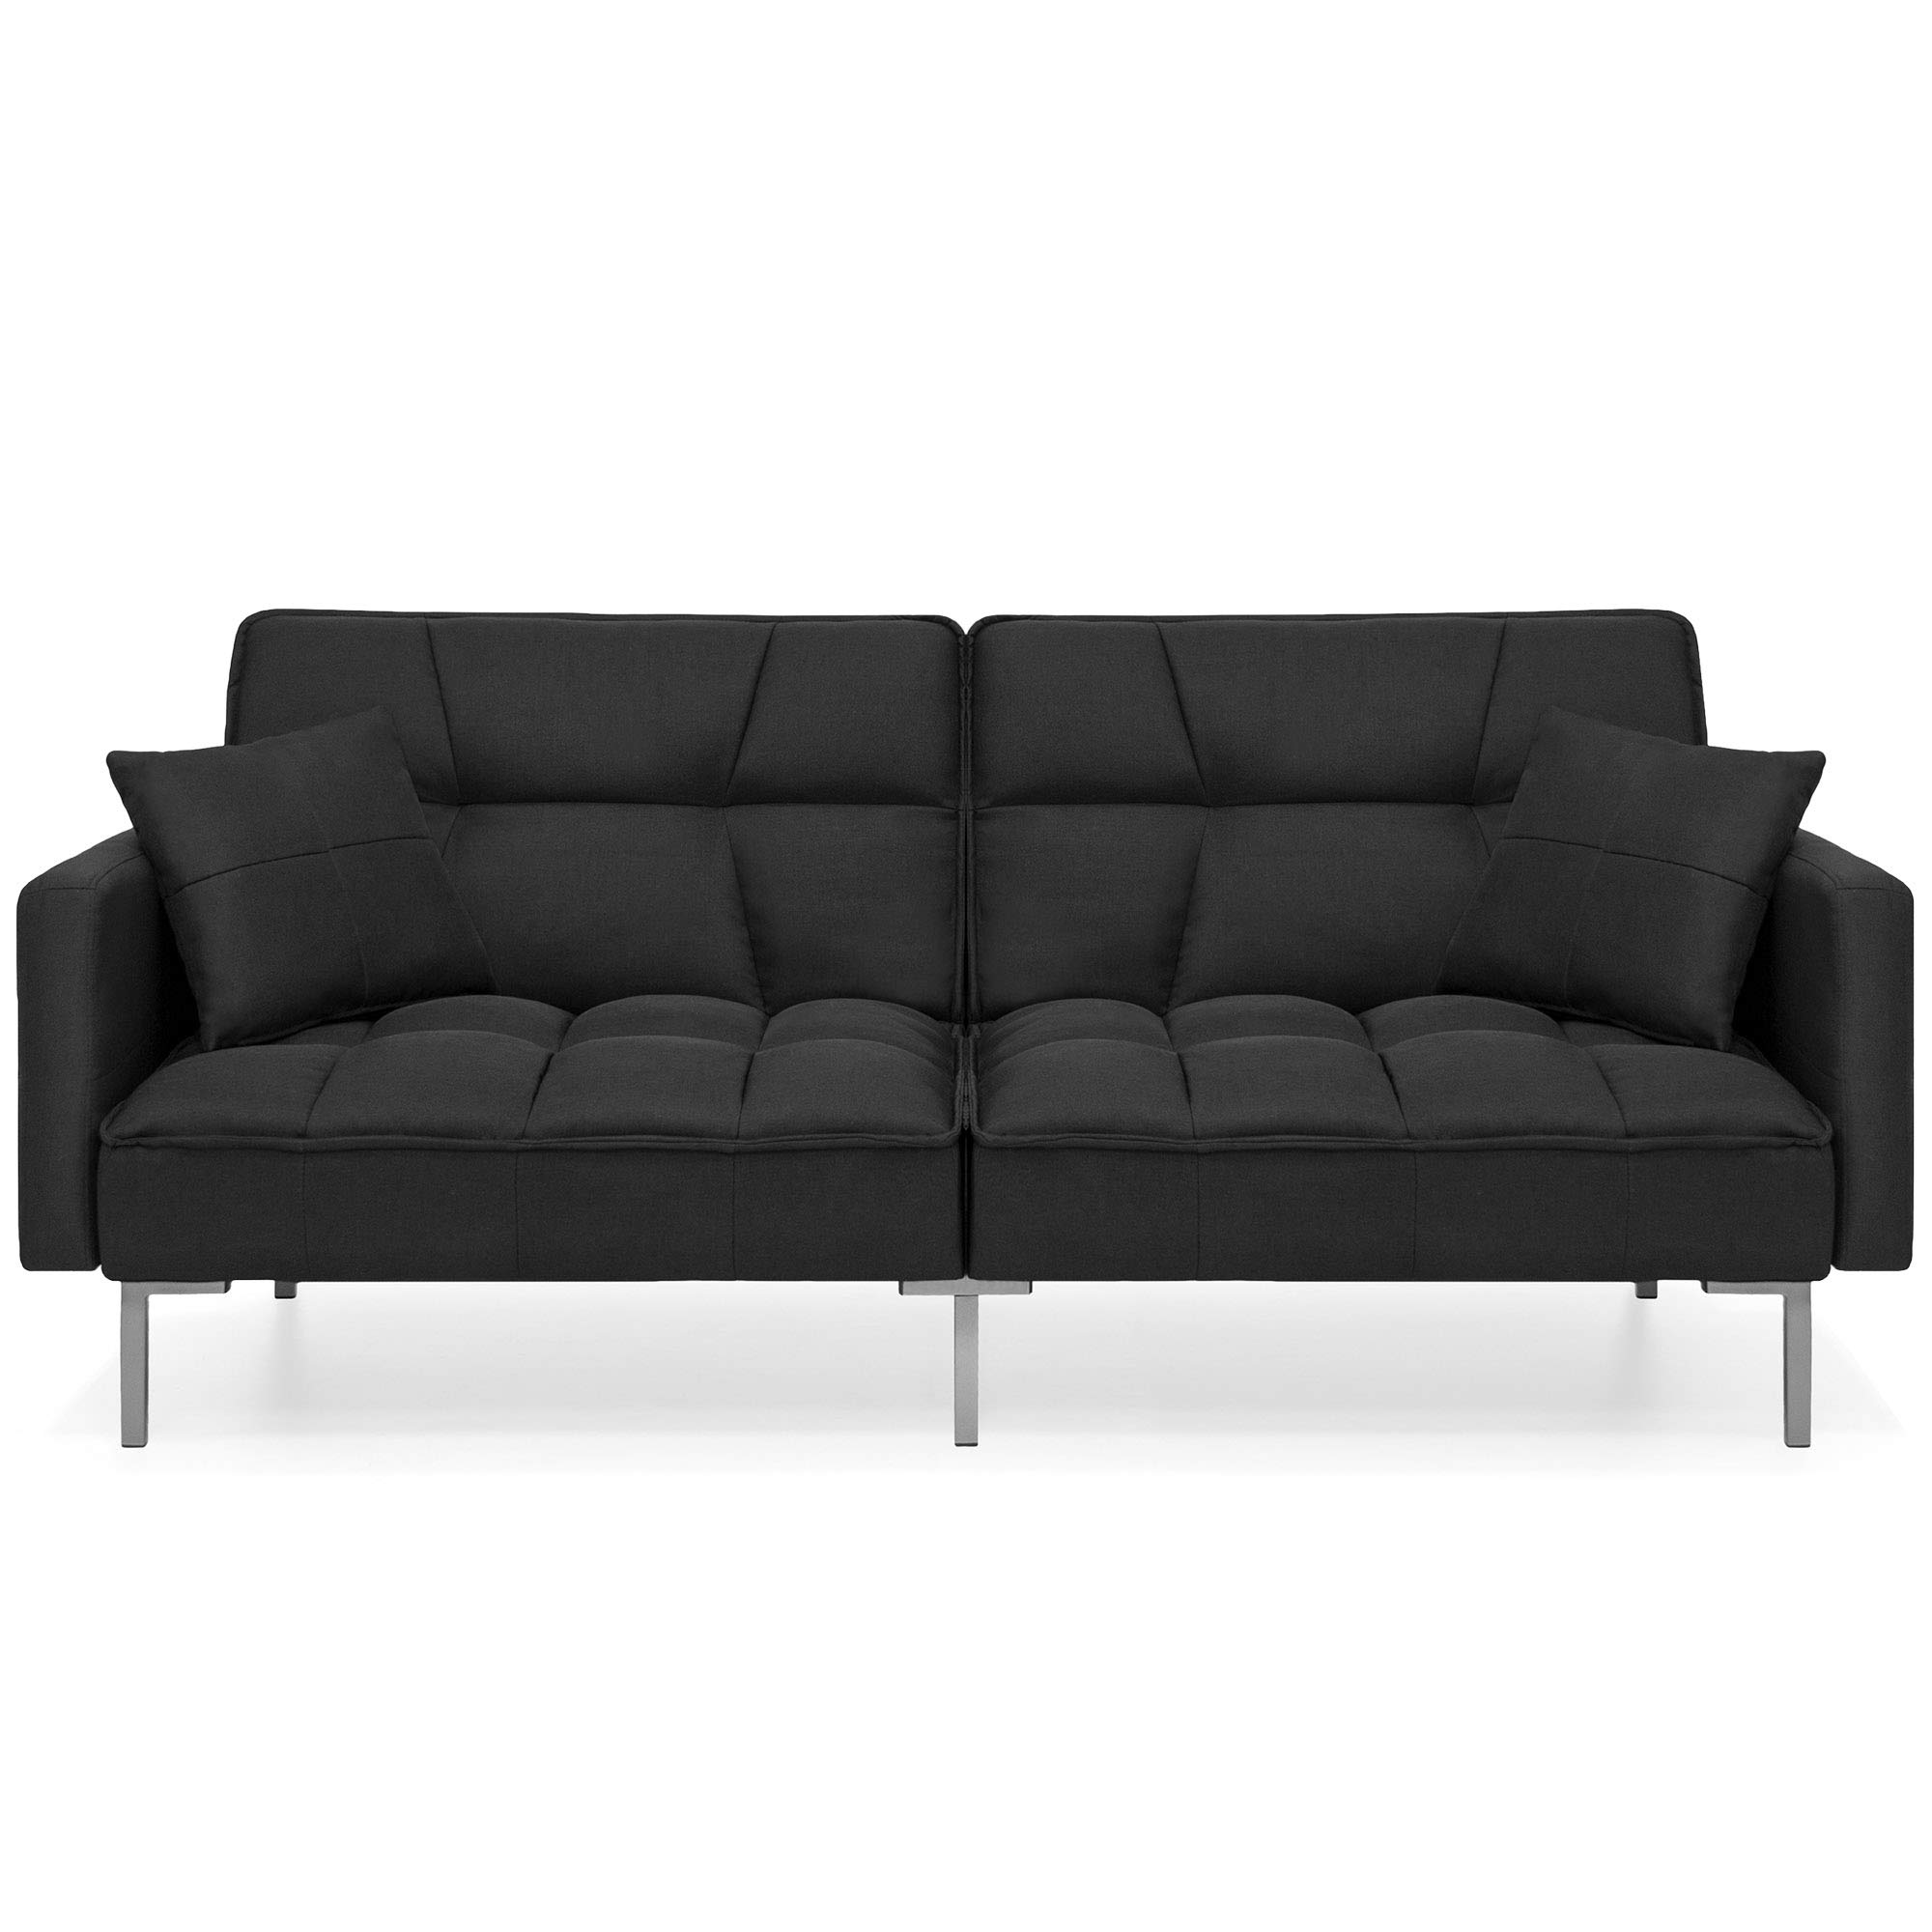 Best Choice Products Living Room Convertible Linen Fabric Tufted Splitback Sleeper Plush Futon Couch Furniture w/ Pillows - Black by Best Choice Products